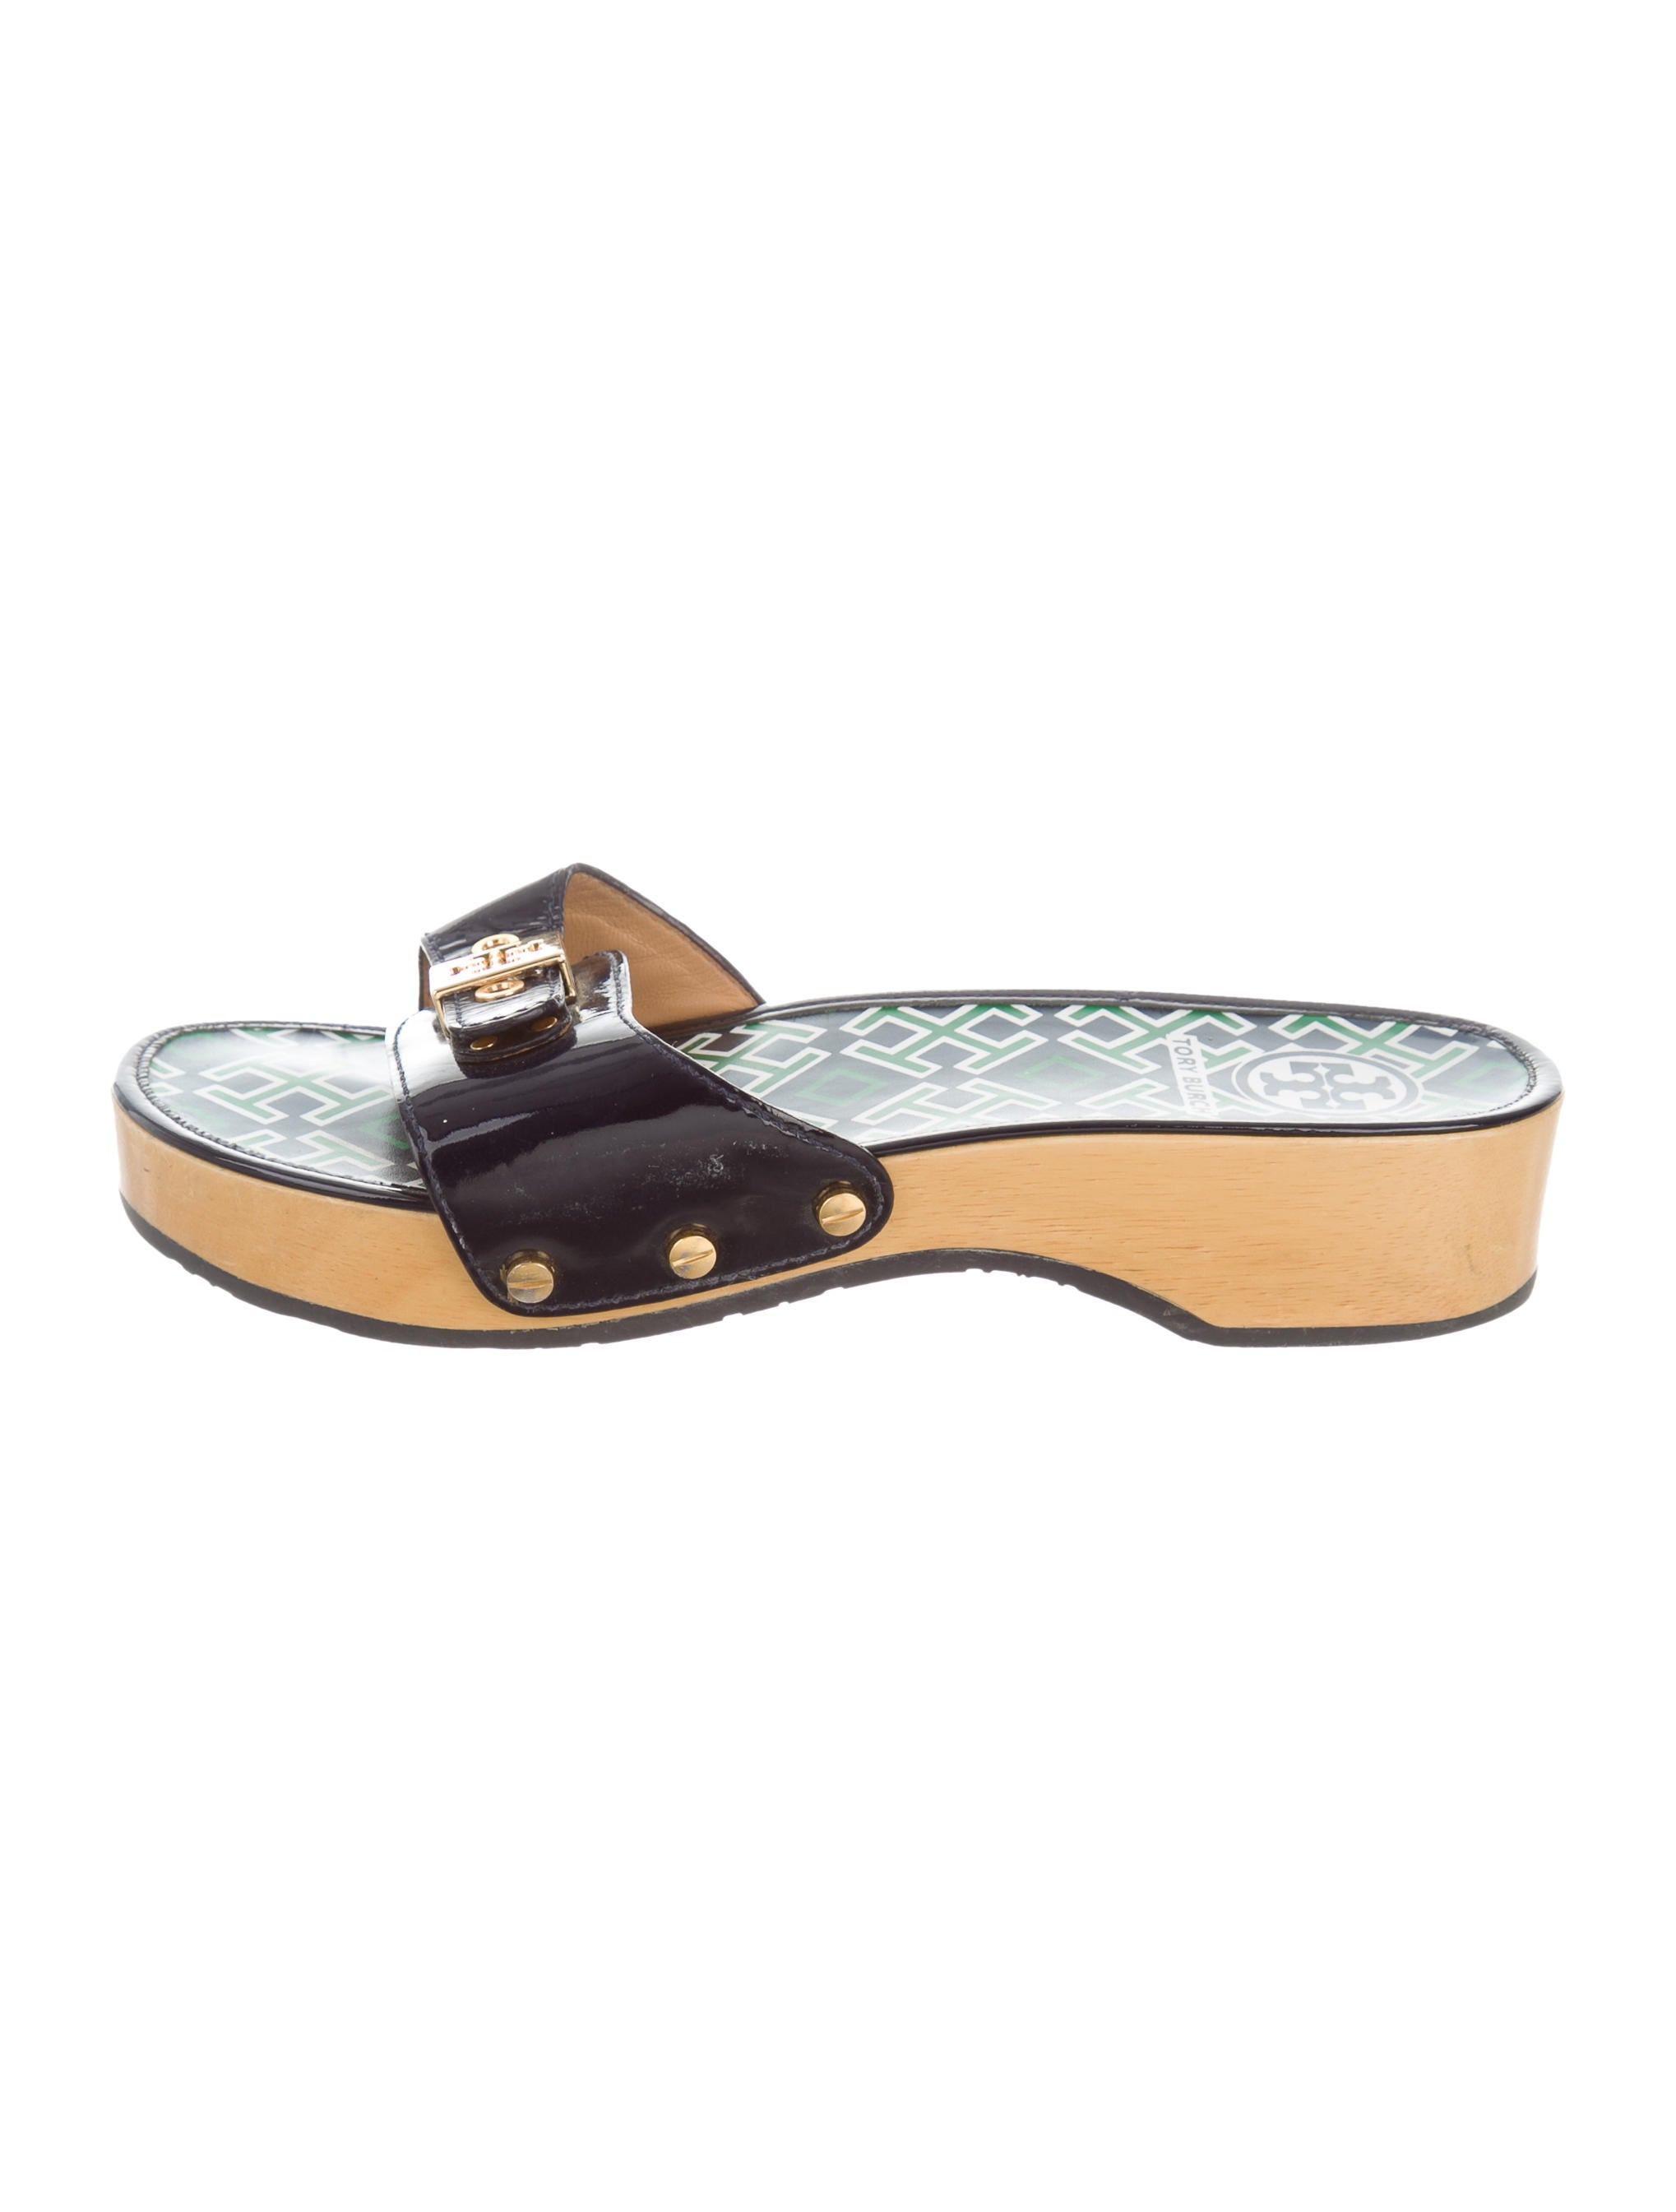 Tory Burch Logo Slide Sandals Shoes Wto110297 The